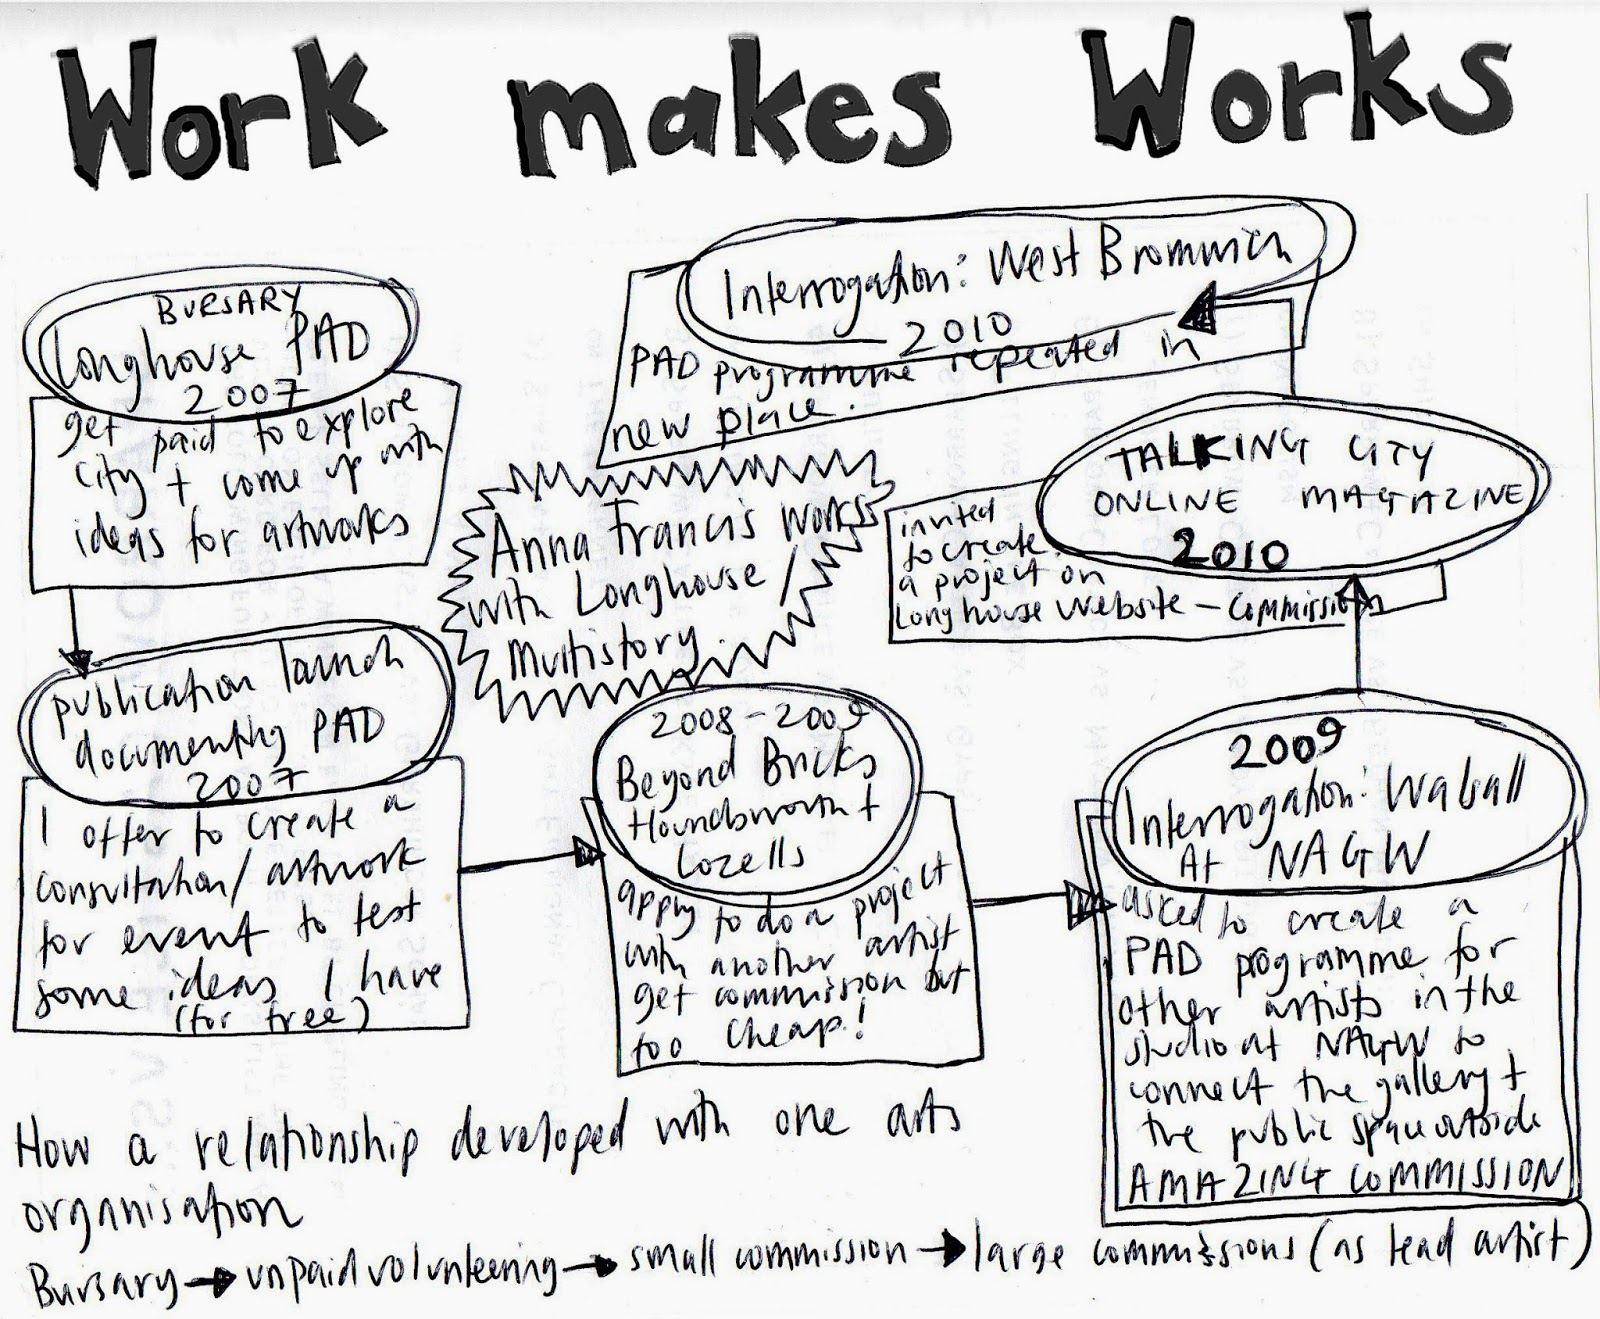 Anna Francis Emily Speed S Work Makes Works Project